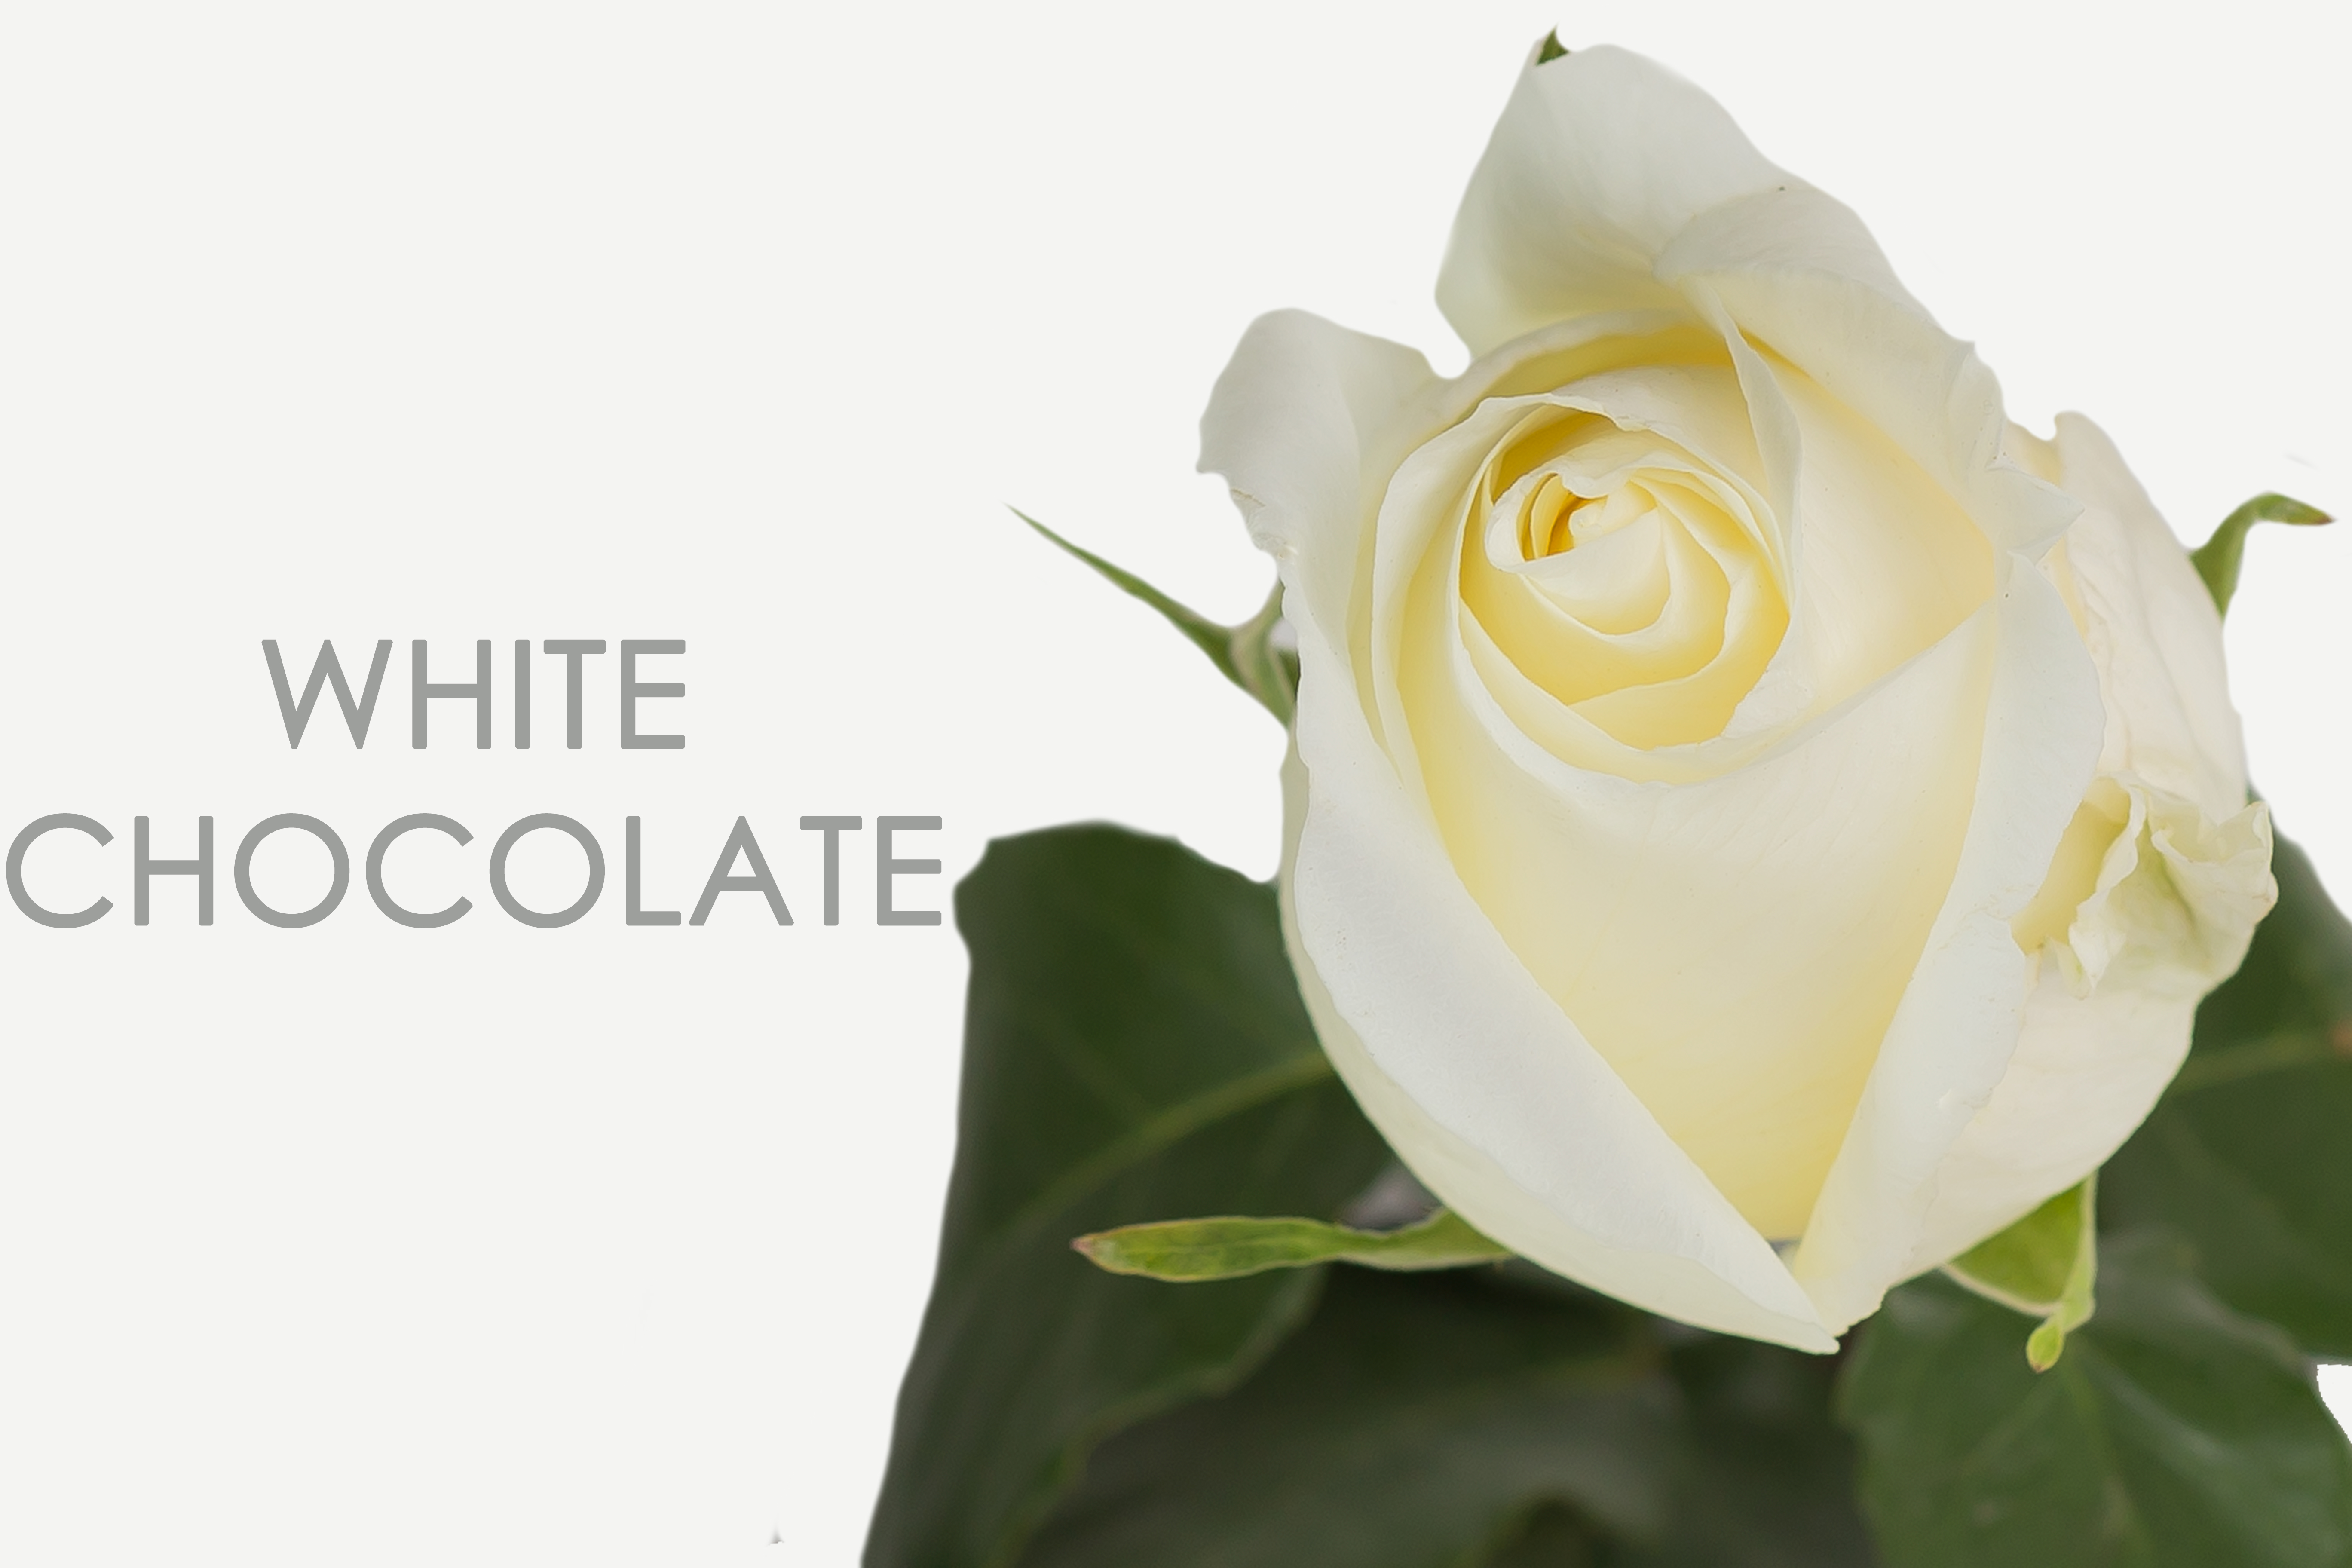 WHITE-CHOCOLATE-CAPTION-UNIDAD